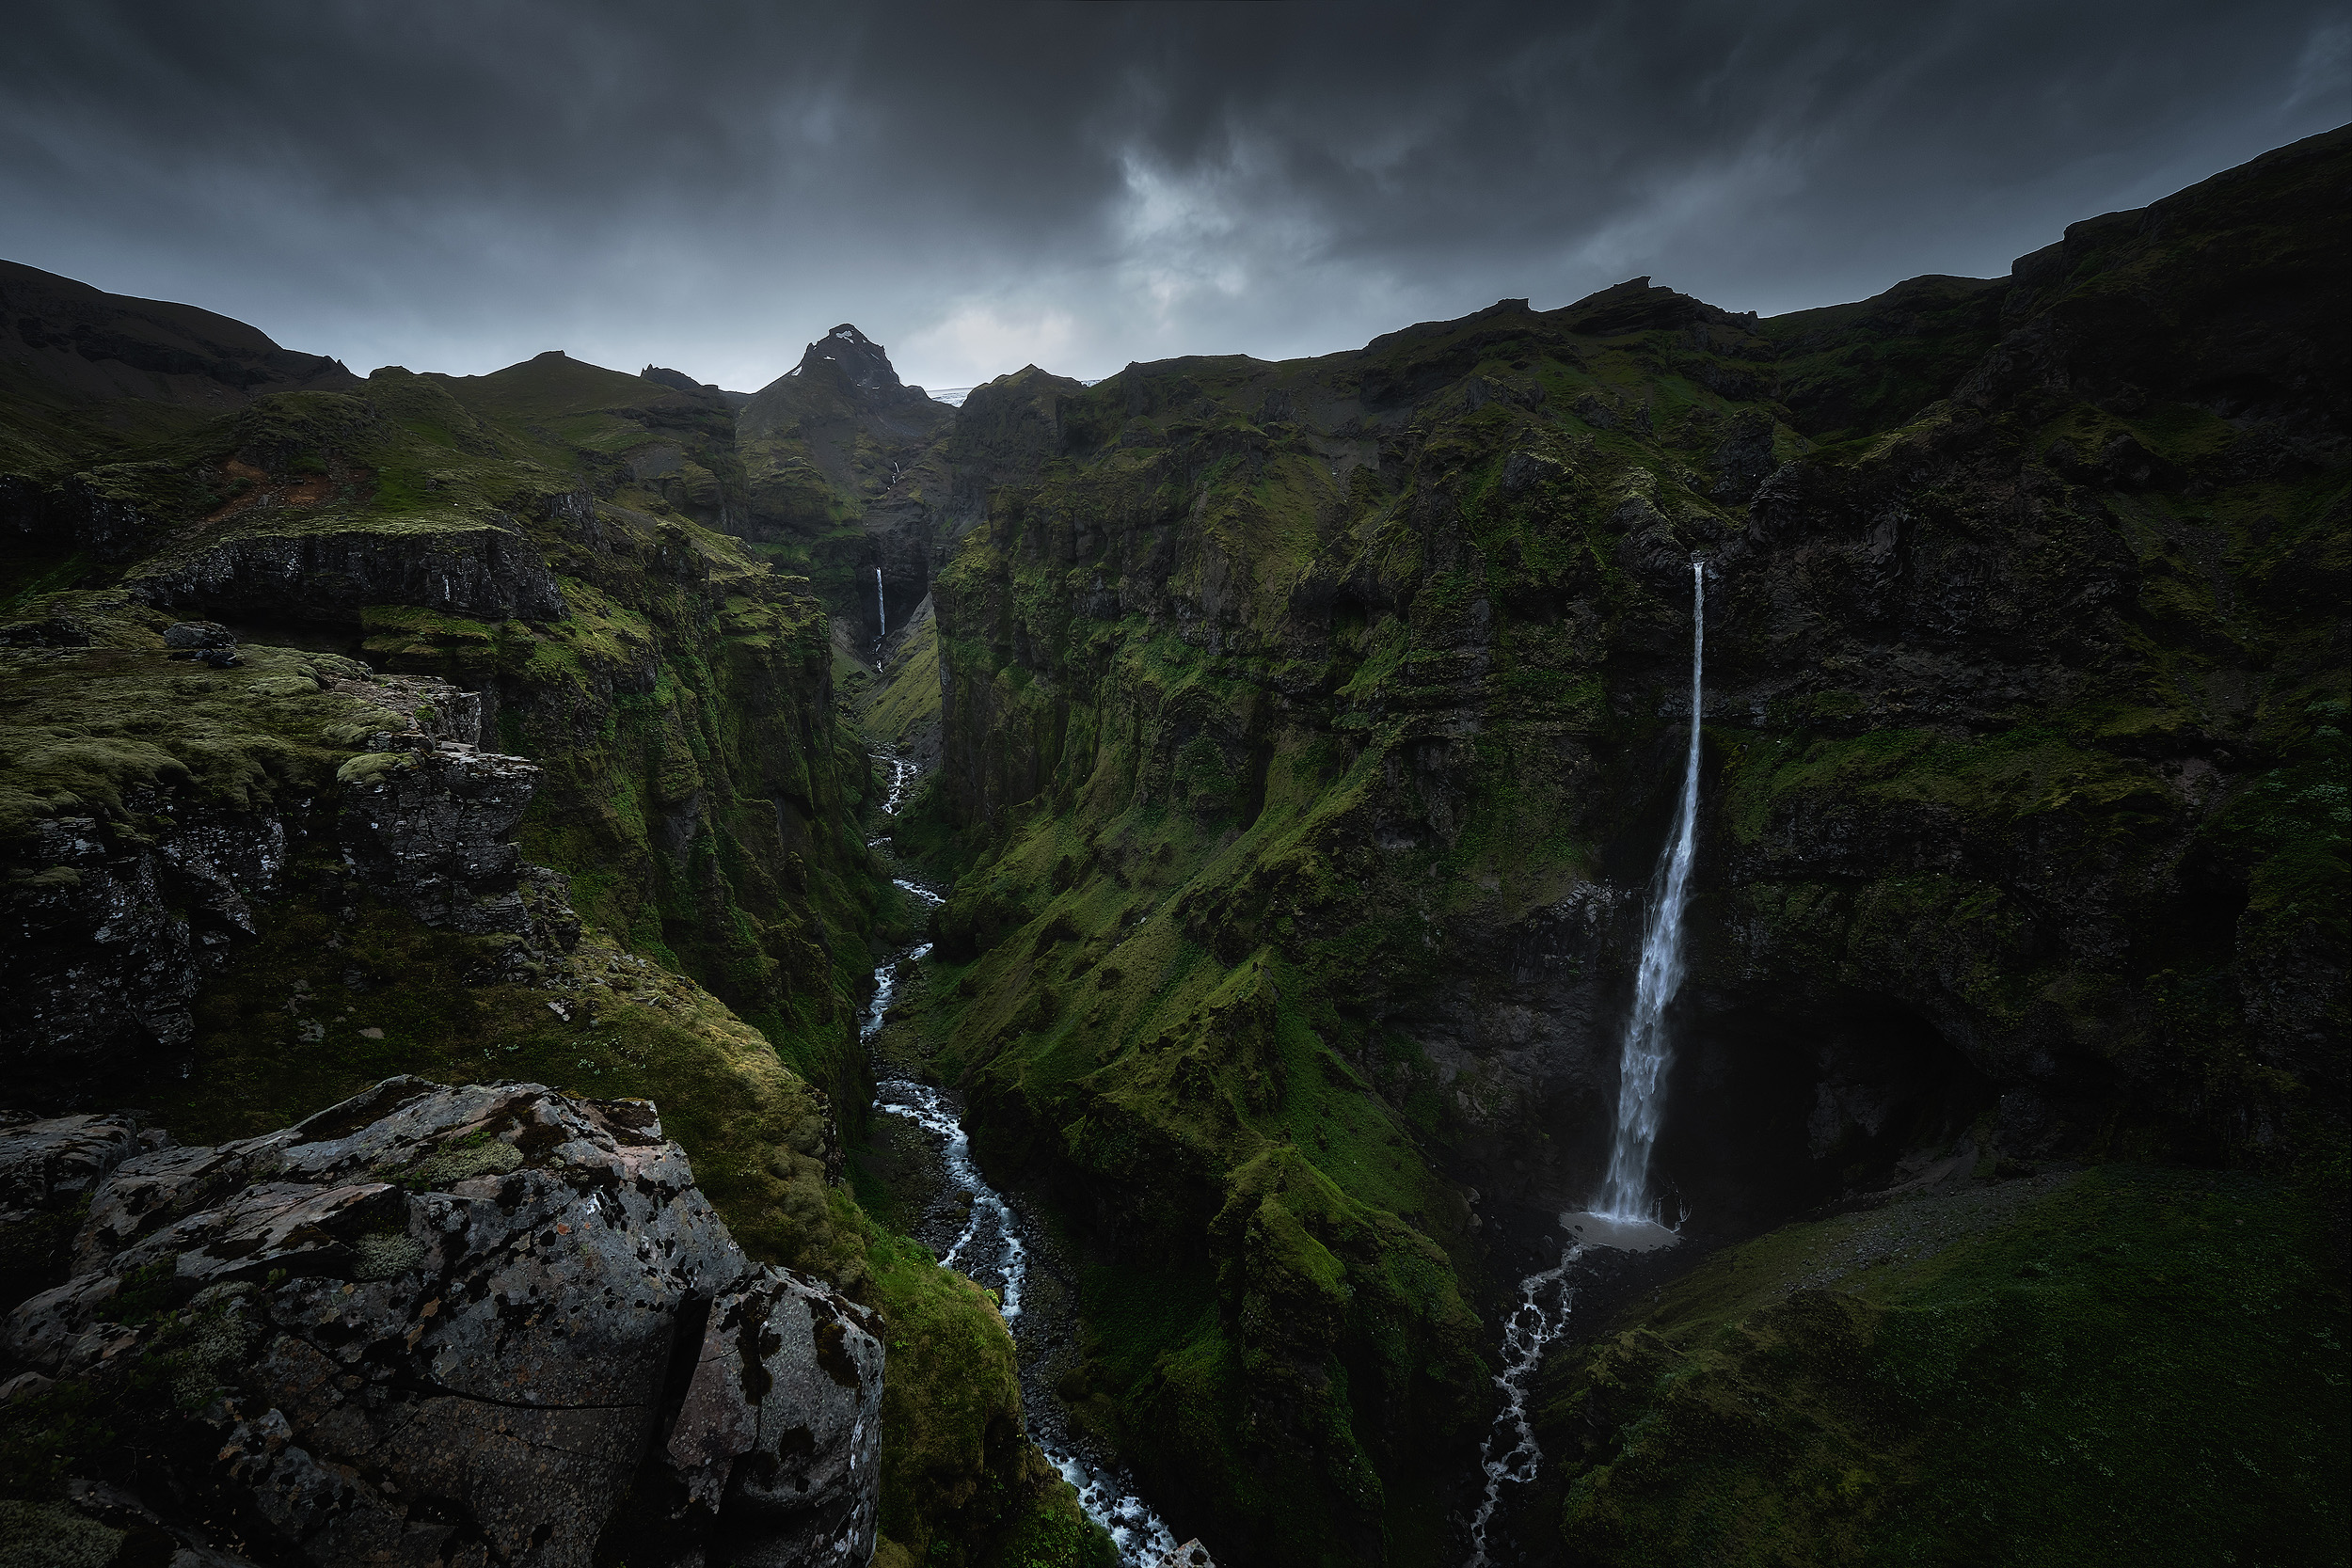 The Hidden Valley   These waterfalls run off the glaciers that dominate Iceland centre and south creating landscapes that feel as though you've travelled back in time millions of years. On my last Iceland workshop we made an effort to get out to some less well known locations that we hadn't visited before and discovered this incredible scene.